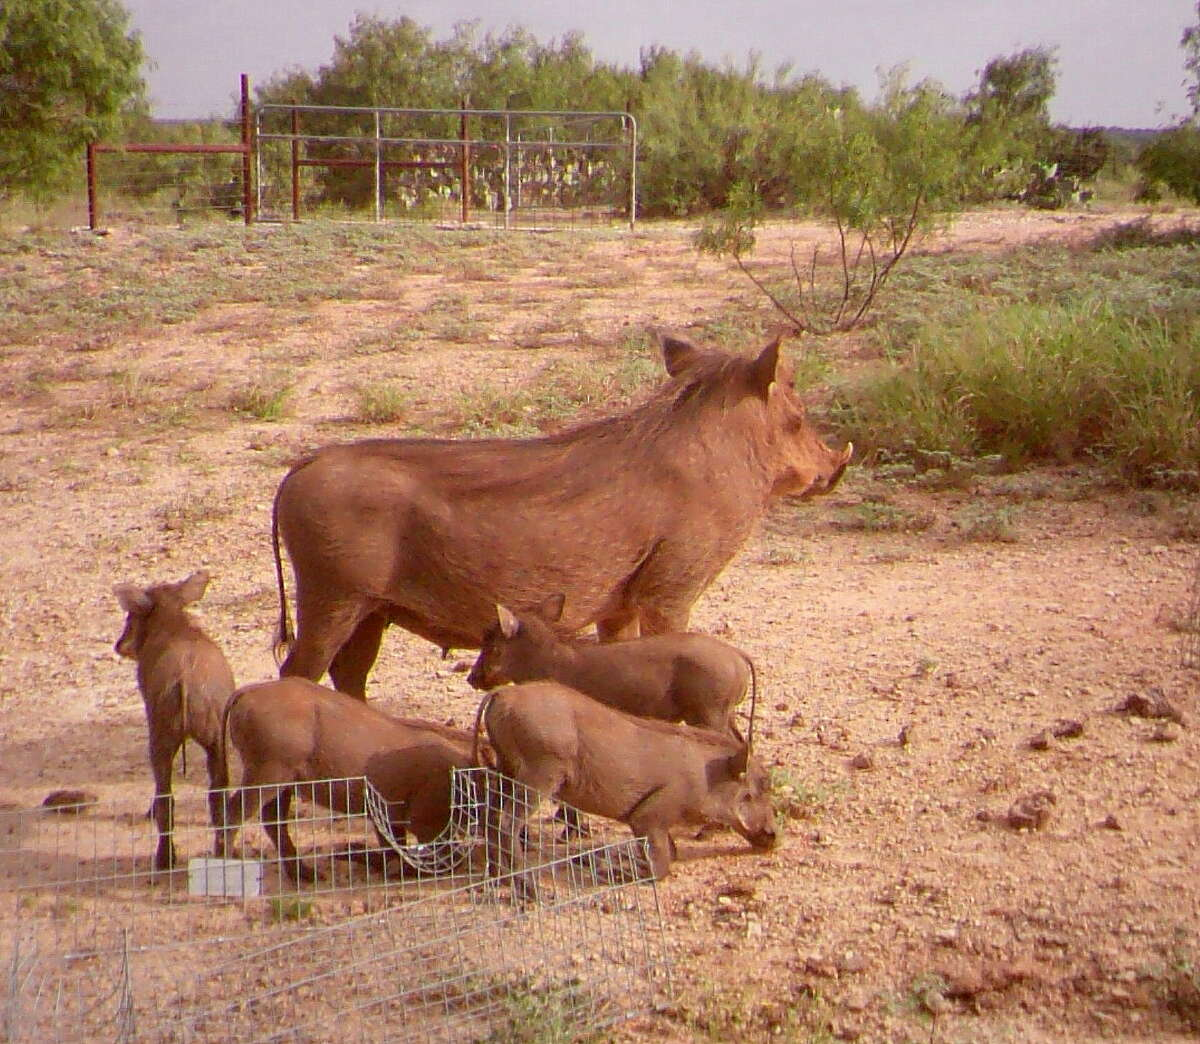 African warthogs, considered an invasive species with potential to negatively affect native wildlife and habitat, have established a small but reproducing population in South Texas.